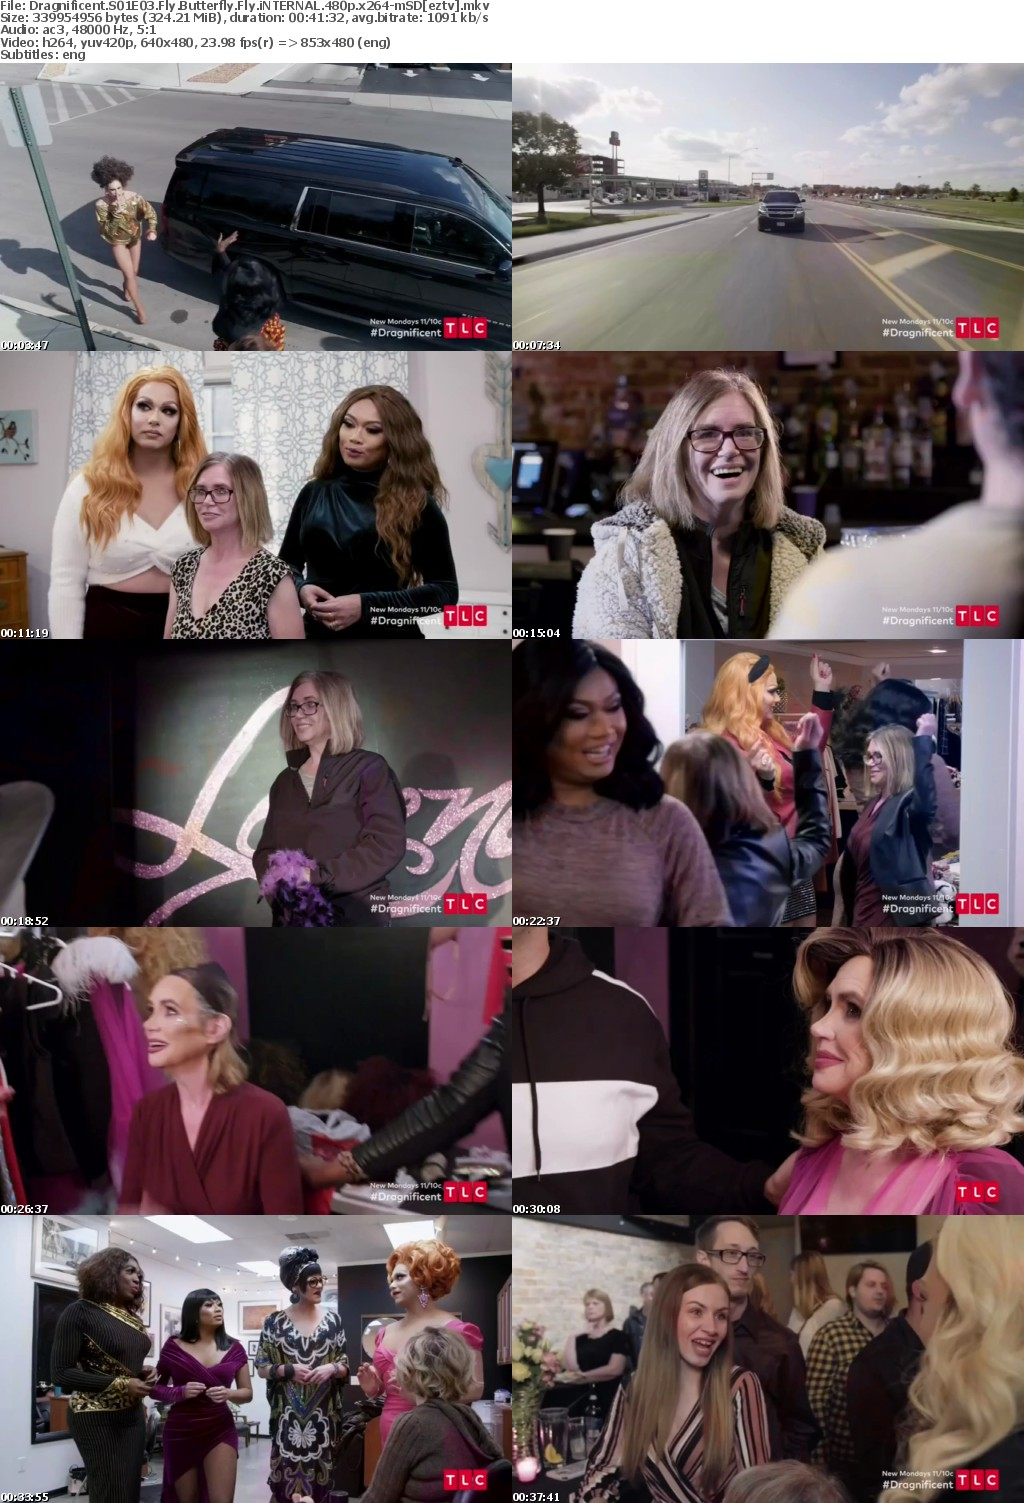 Dragnificent S01E03 Fly Butterfly Fly iNTERNAL 480p x264-mSD